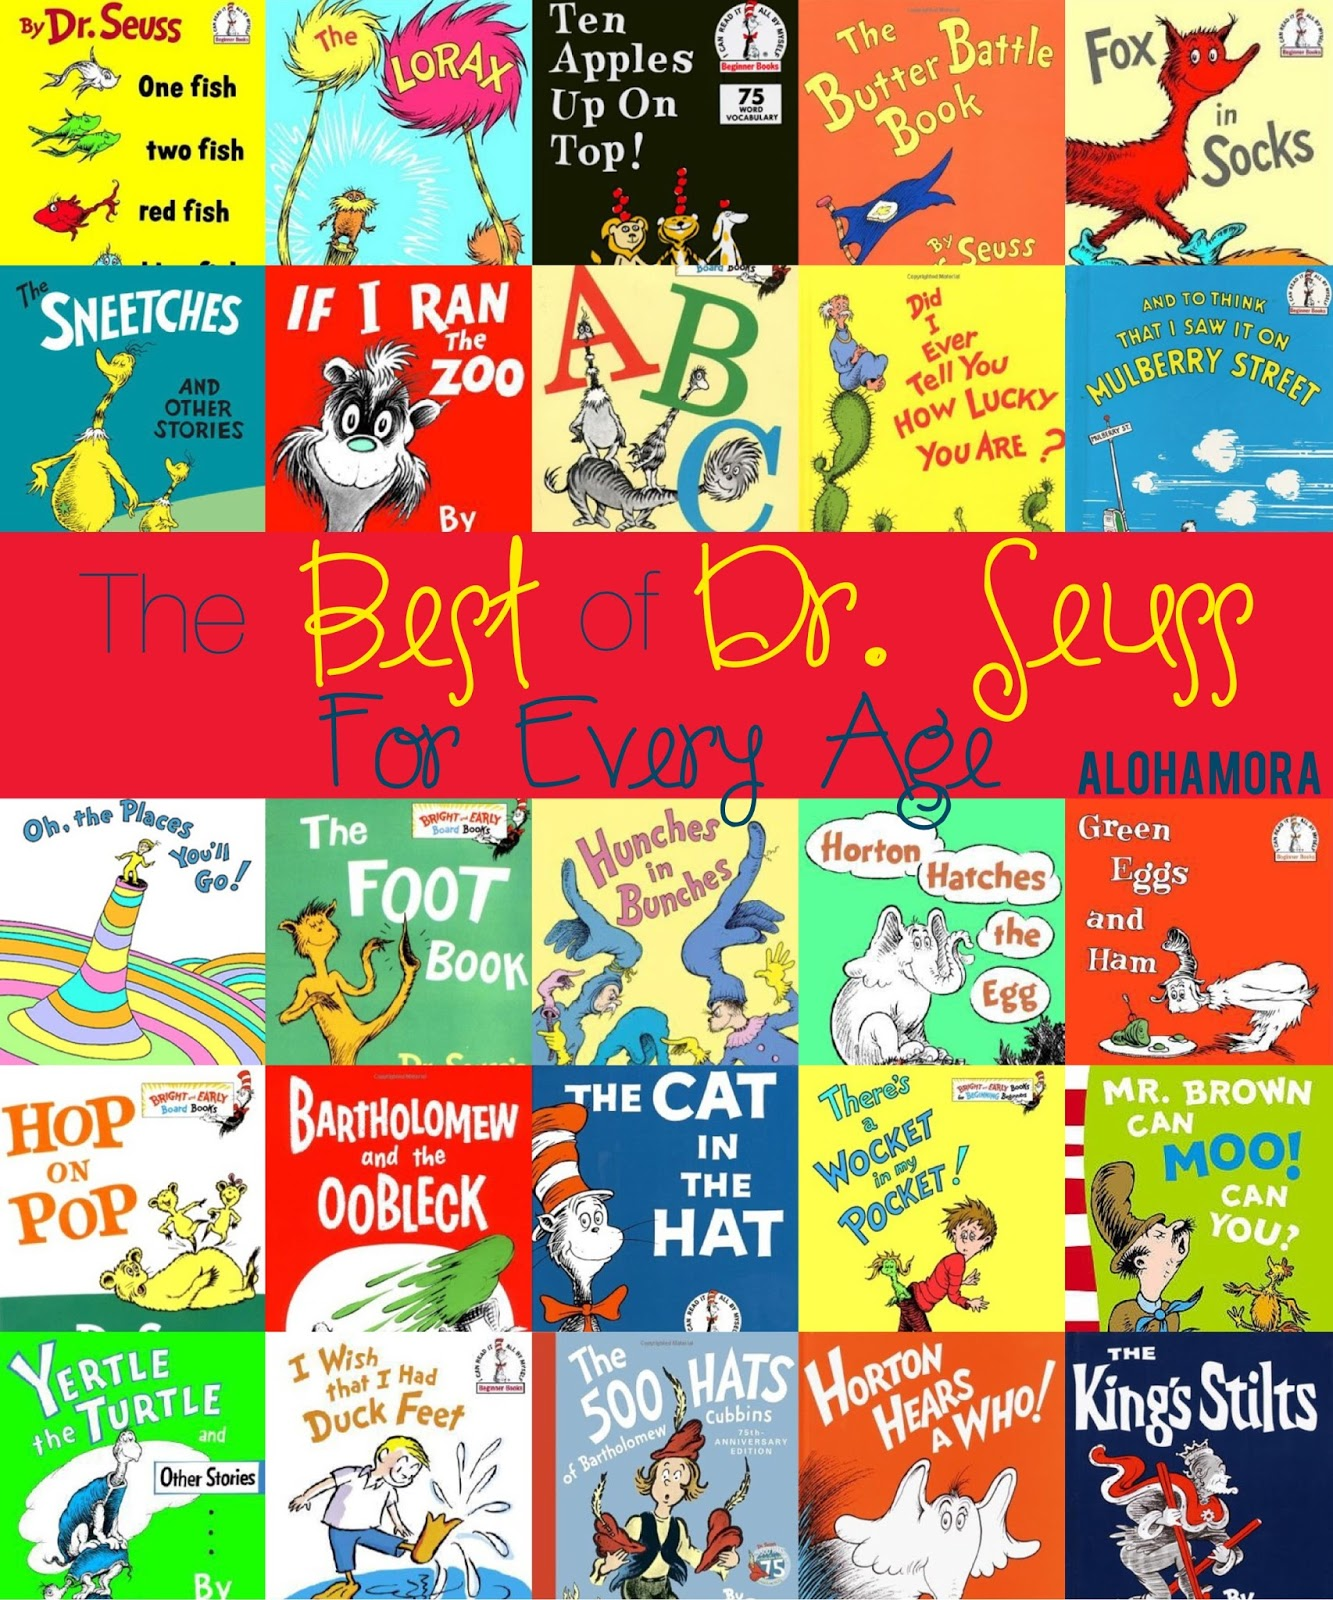 Alohamora Open A Book The Best Of Dr Seuss Books For Every Age